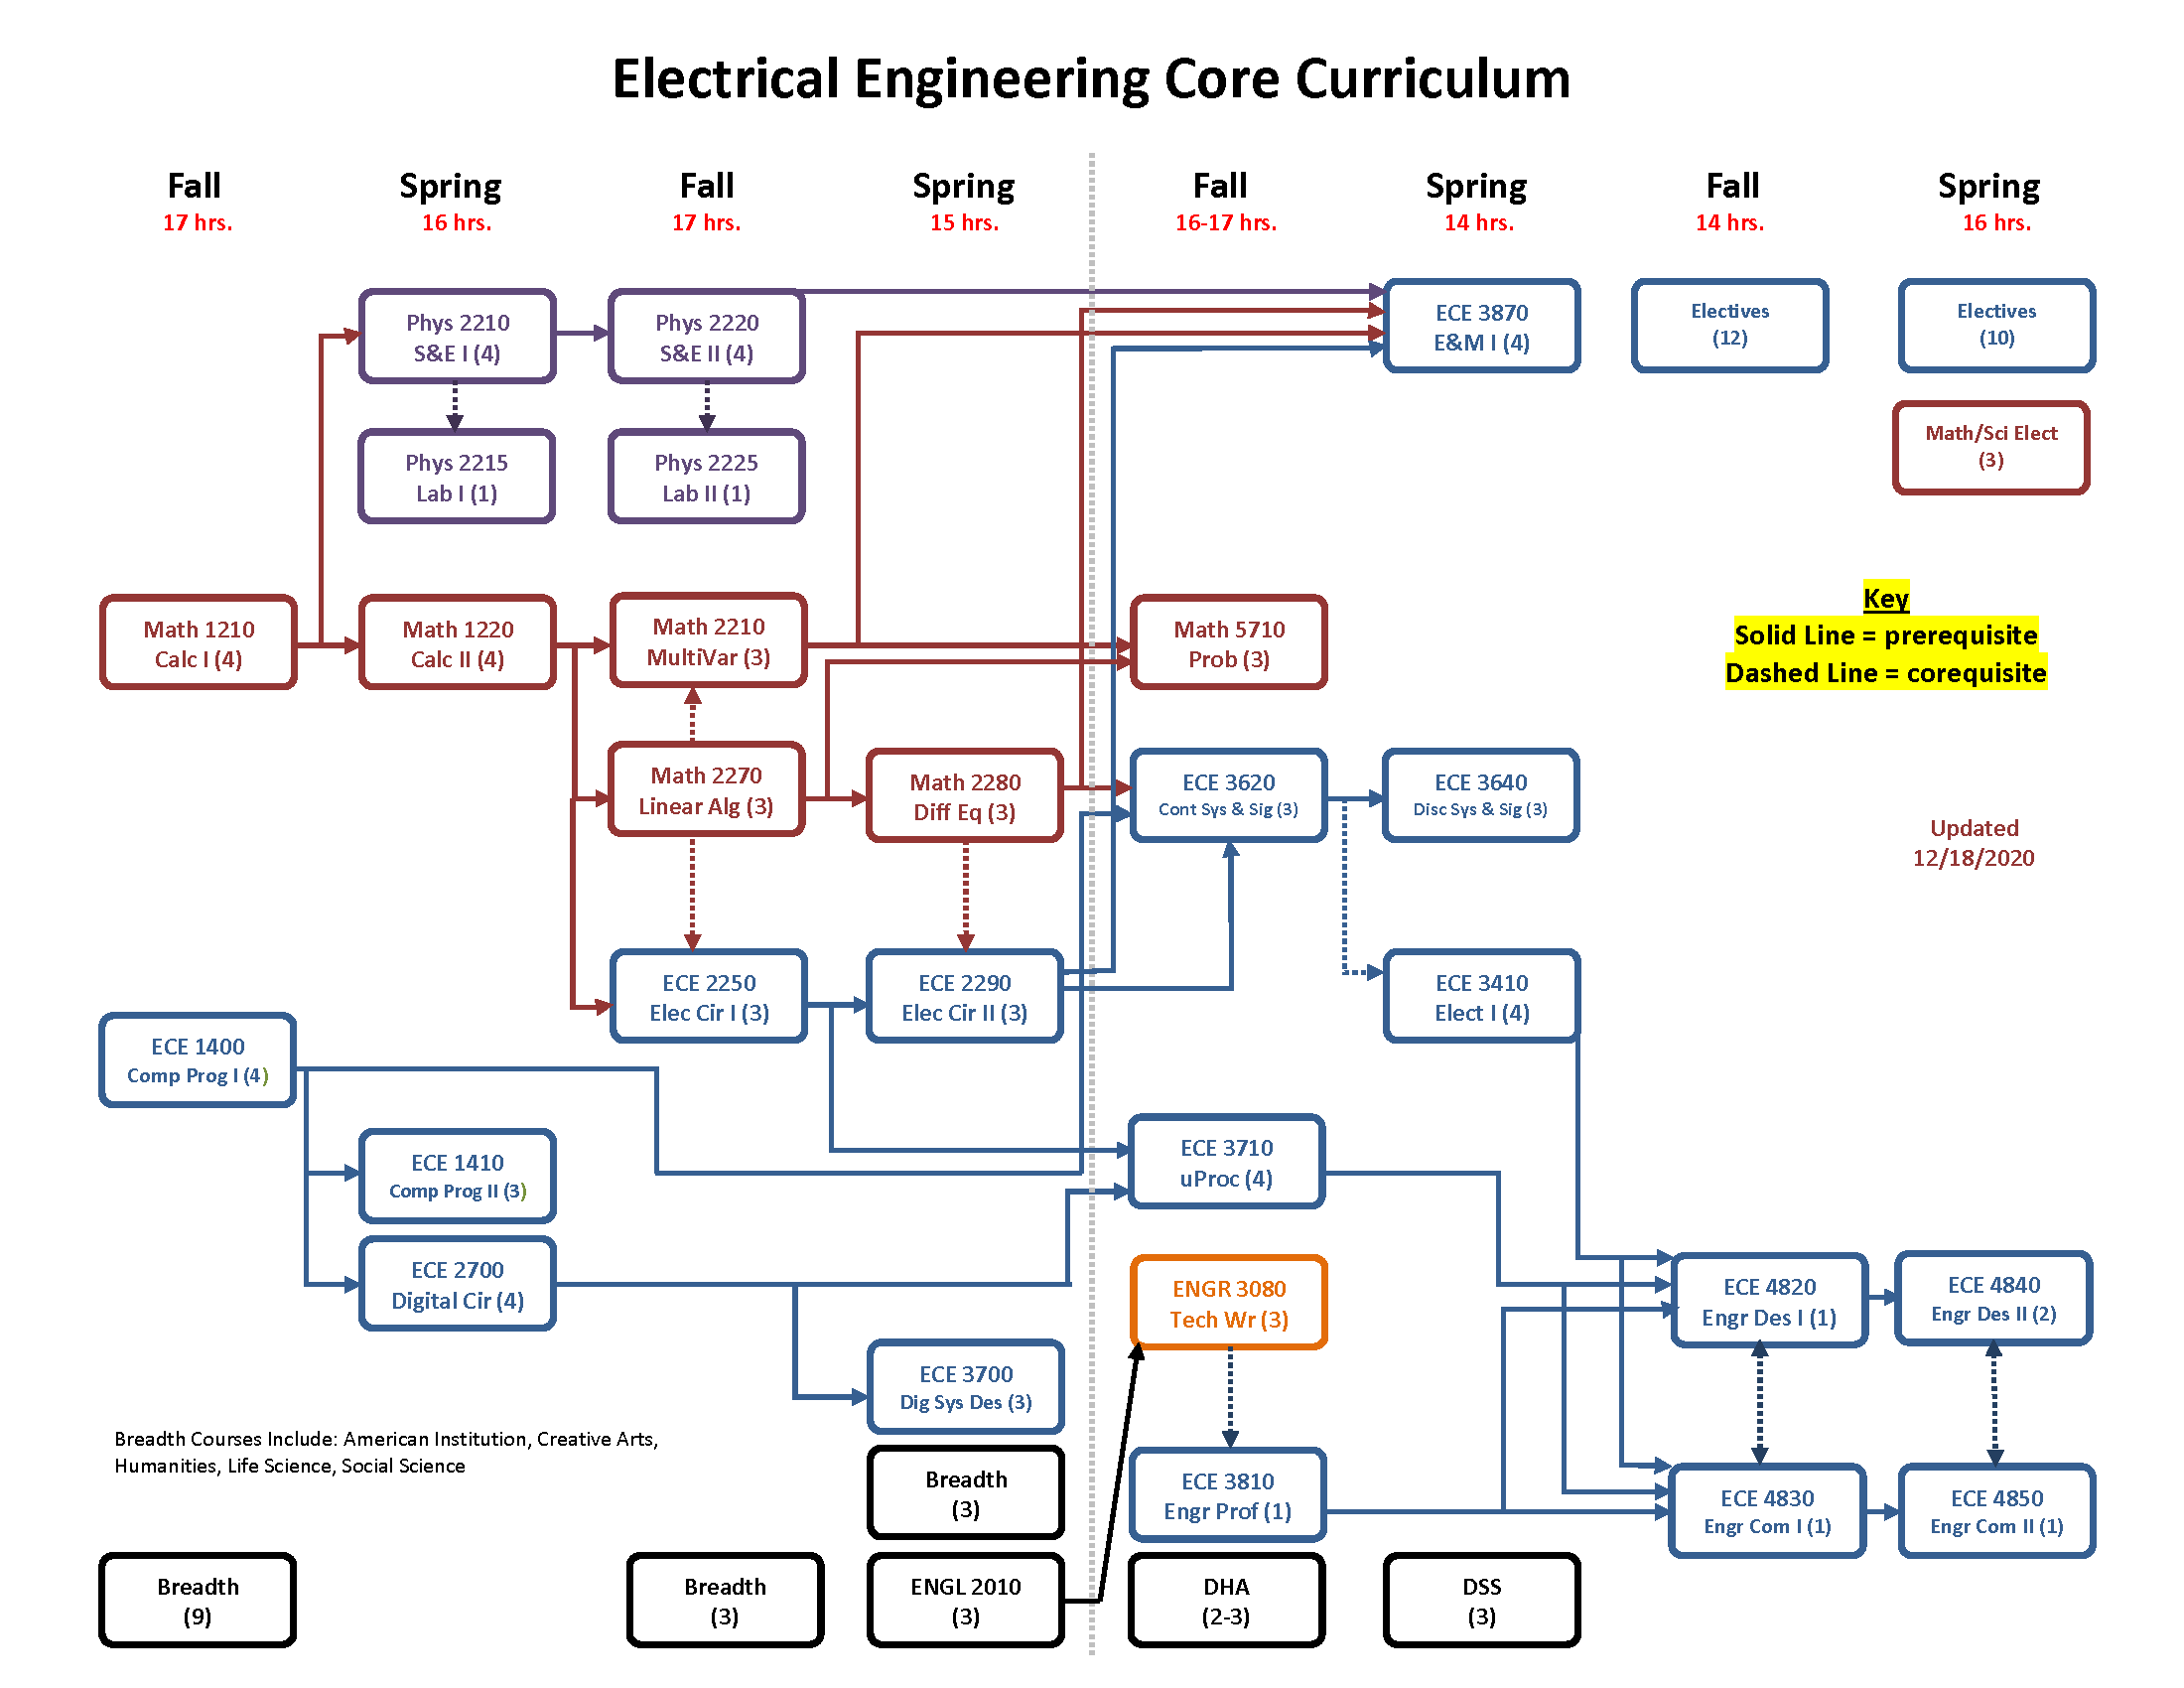 Visual representation of what courses one should take each year in the Electrical Engineering Program